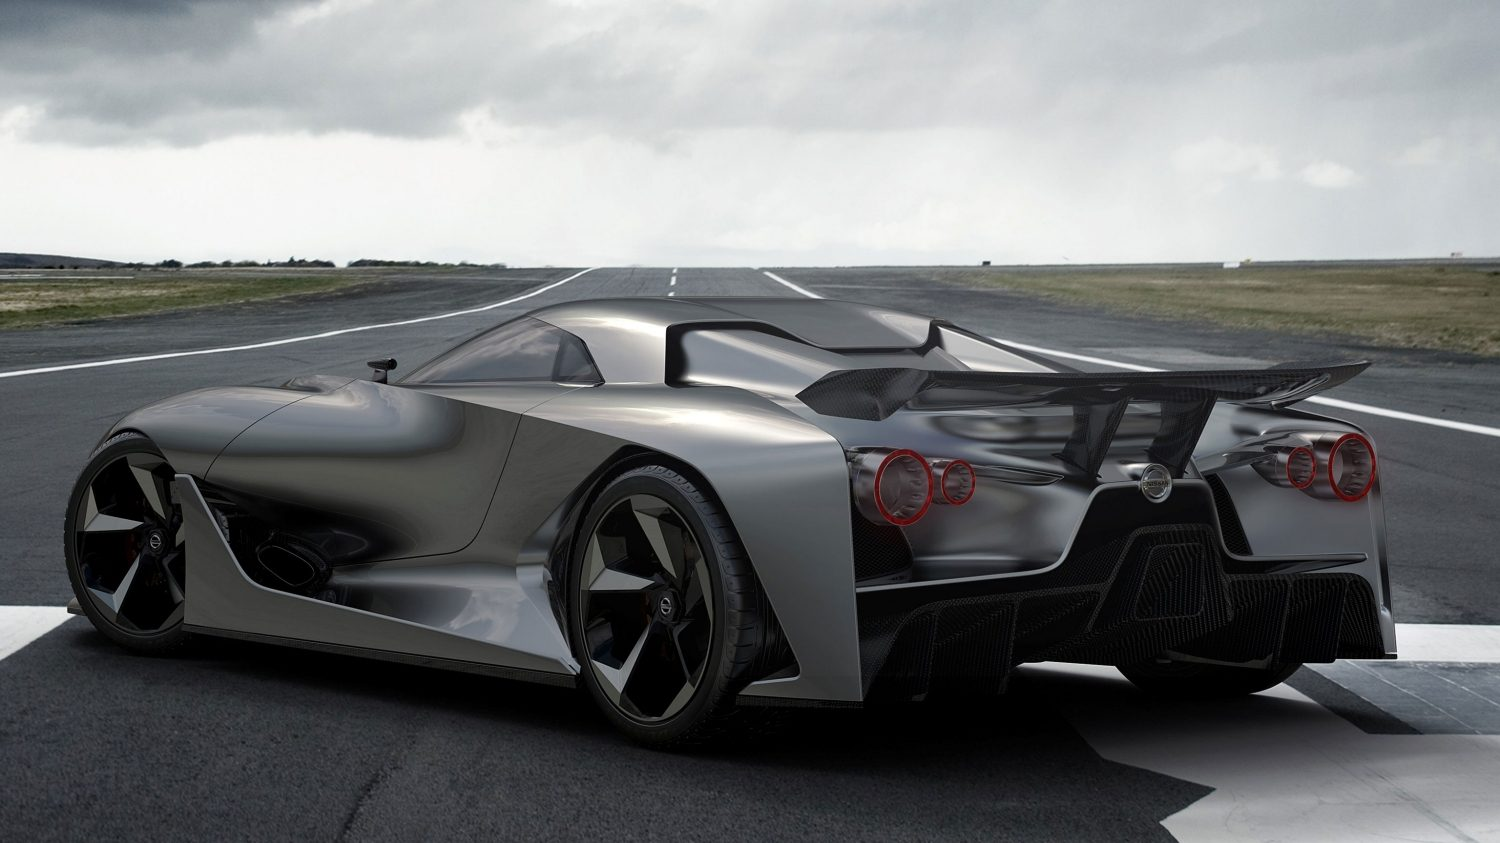 Experience Nissan - Concept car - 2020 Vision Gran Turismo - 3/4 rear view